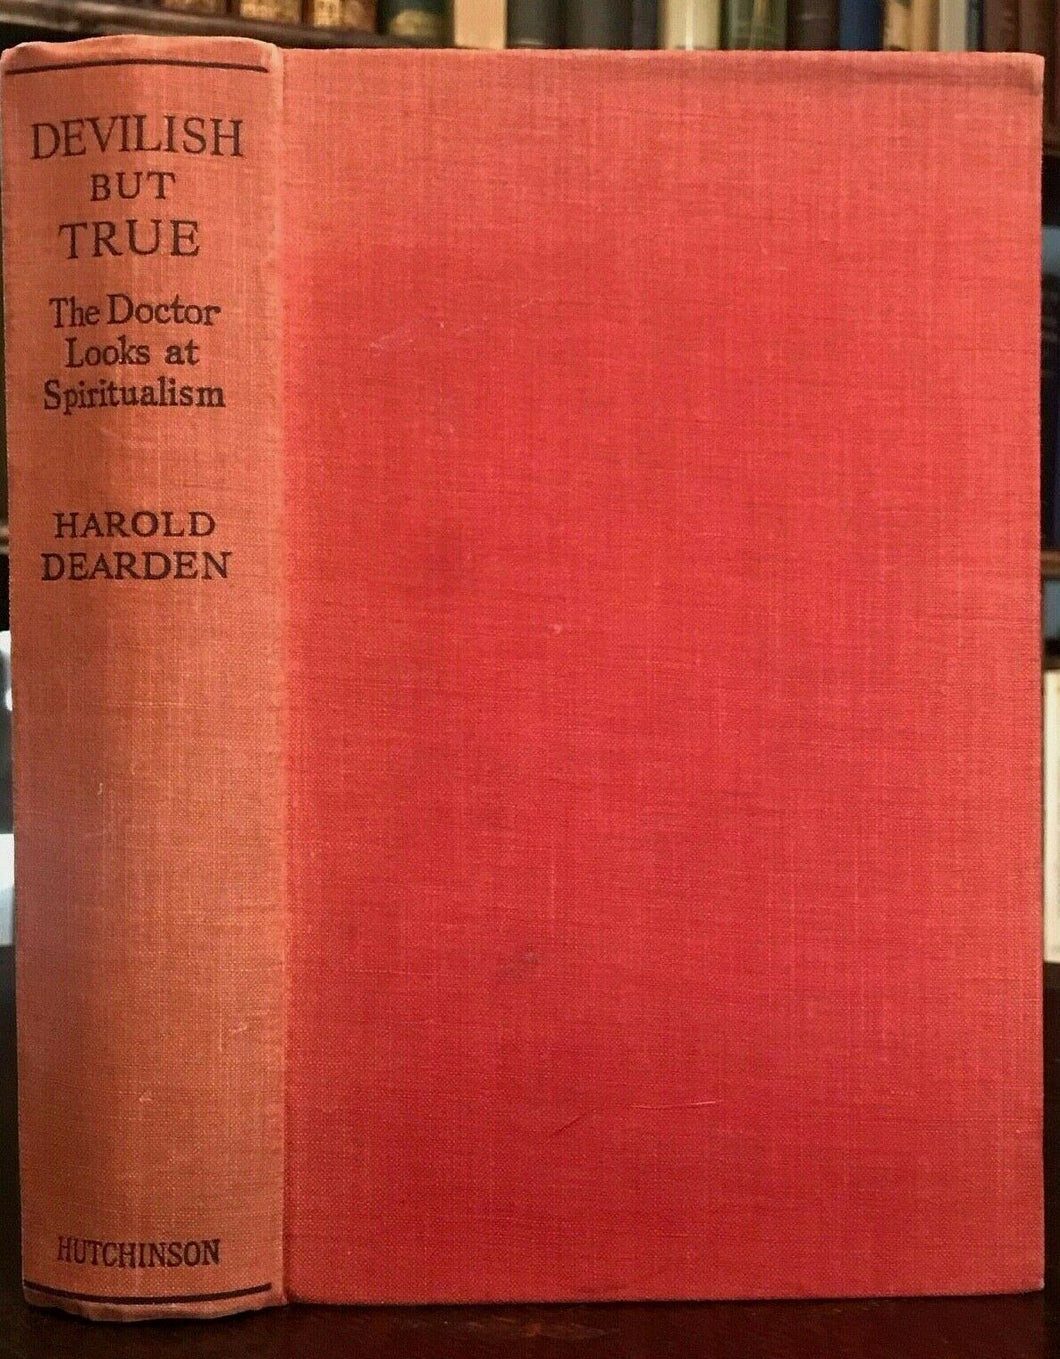 DEVILISH BUT TRUE: DOCTOR LOOKS AT SPIRITUALISM - Dearden - 1st Ed 1936 - OCCULT